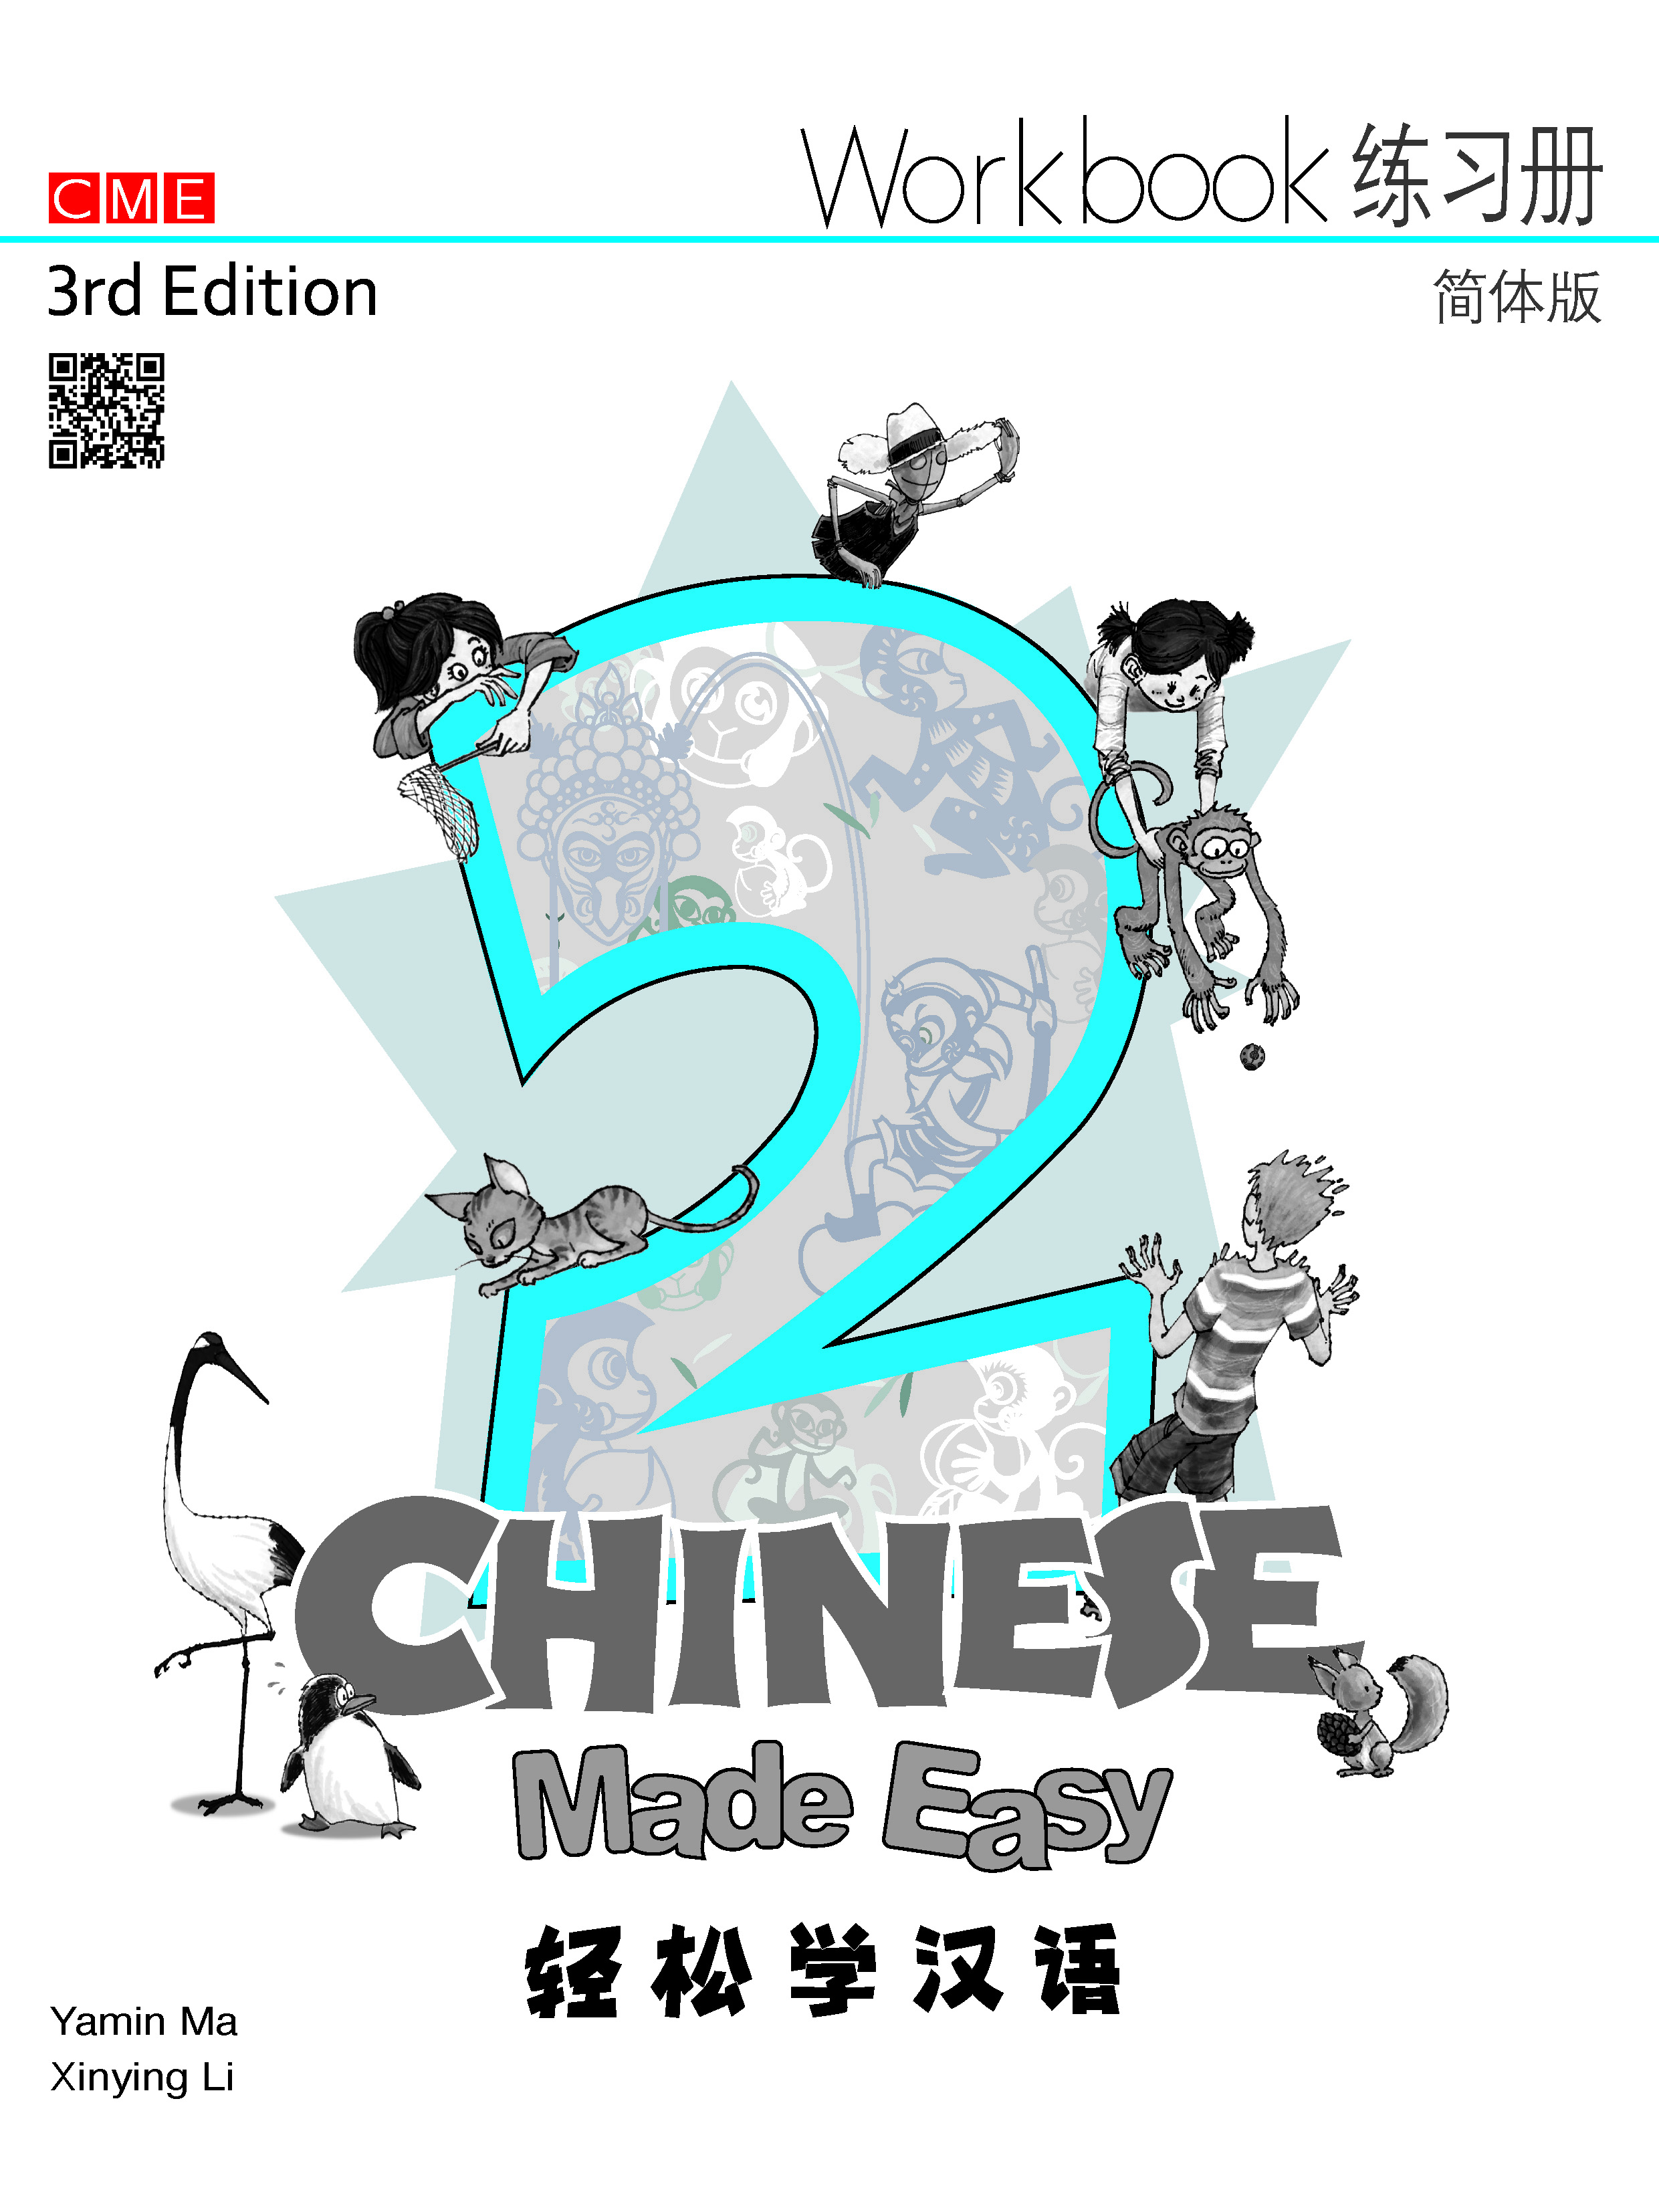 Chinese Made Easy WorkBook 2 (Simplified Characters)  轻松学汉语练习册二